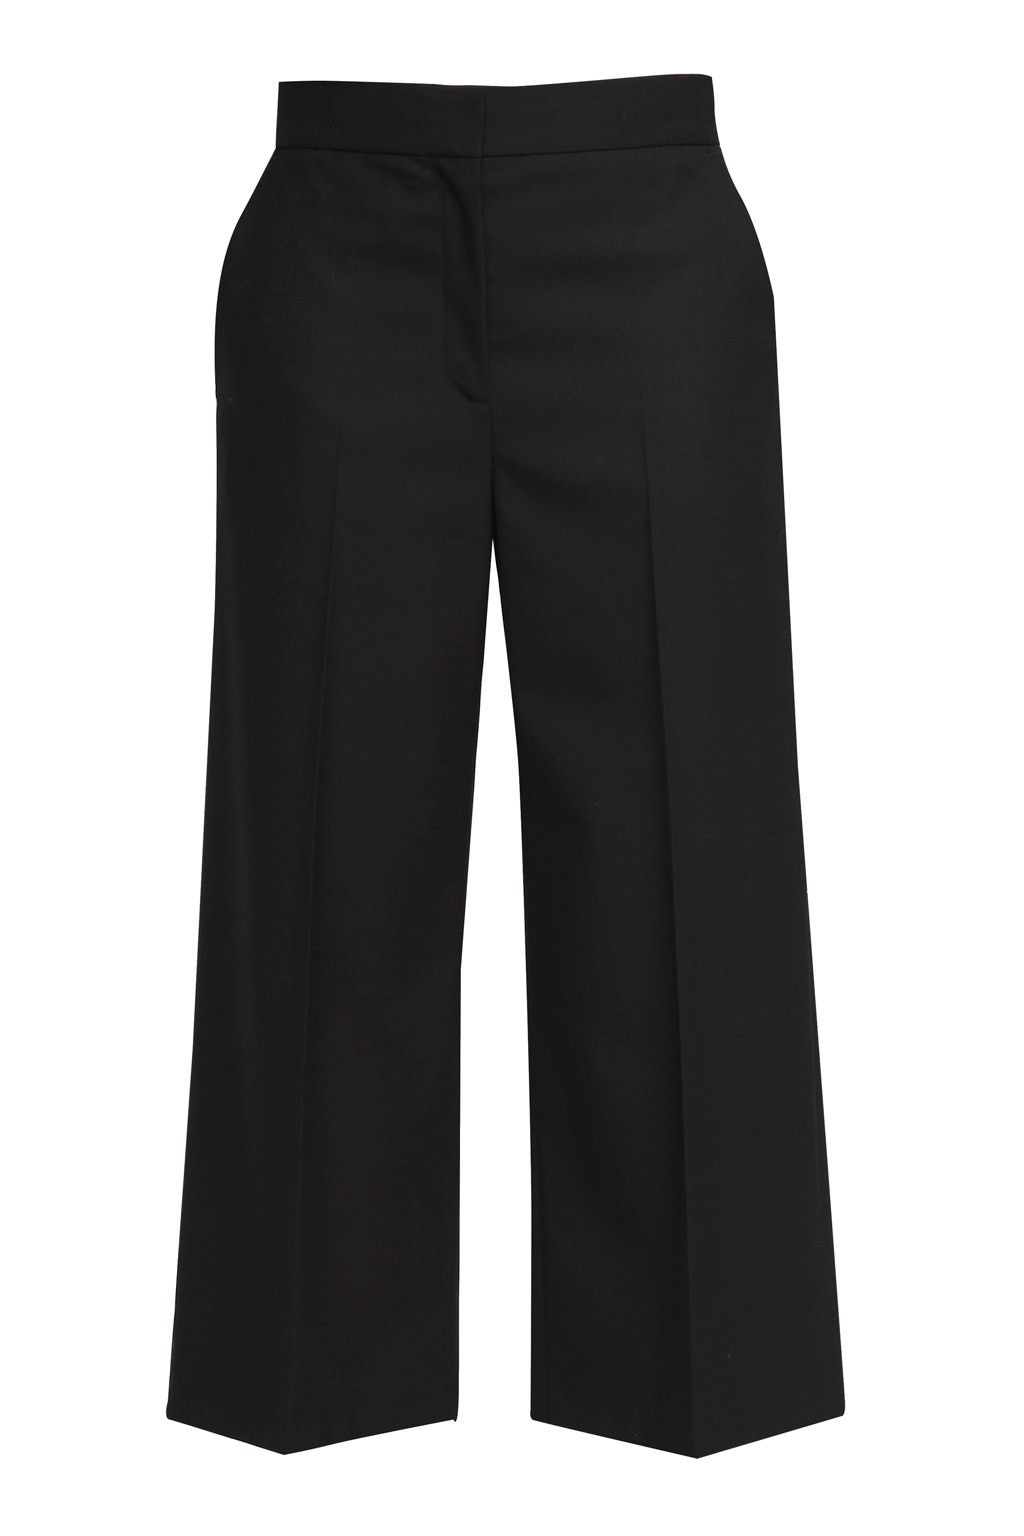 French Connection Winter Tallulah Culottes, Black